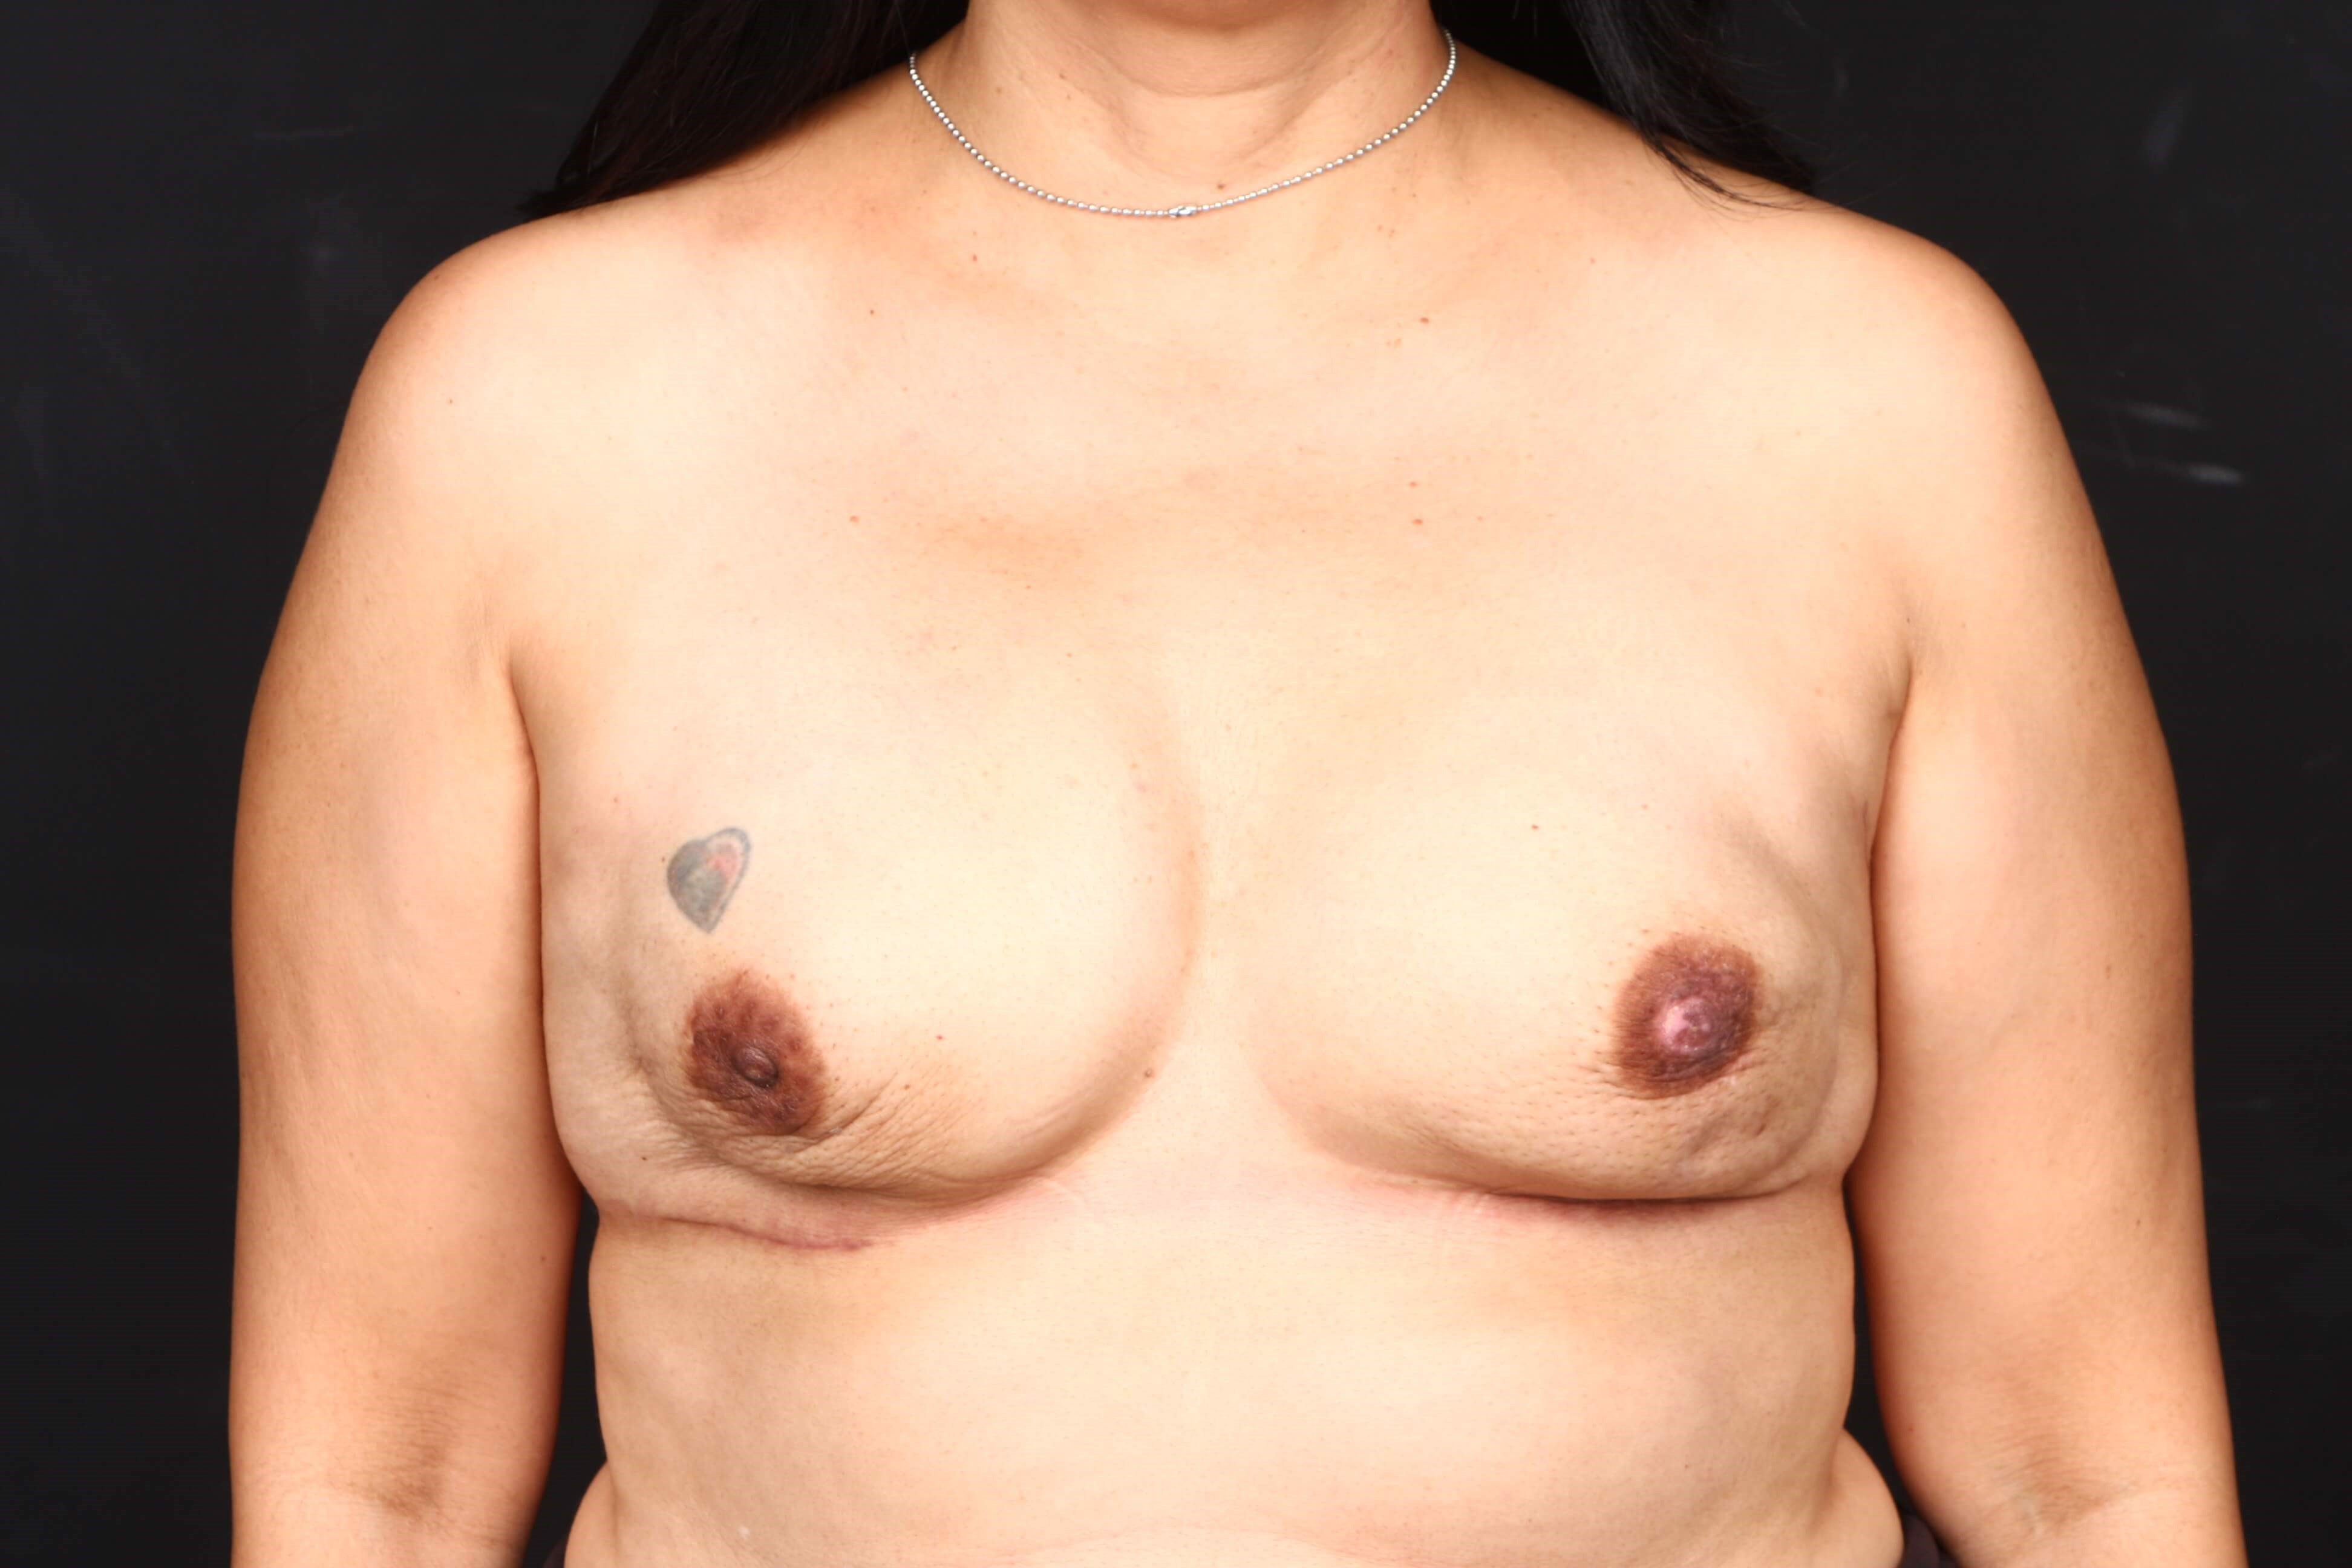 52 y/o breast reconstruction Front view tissue expanders